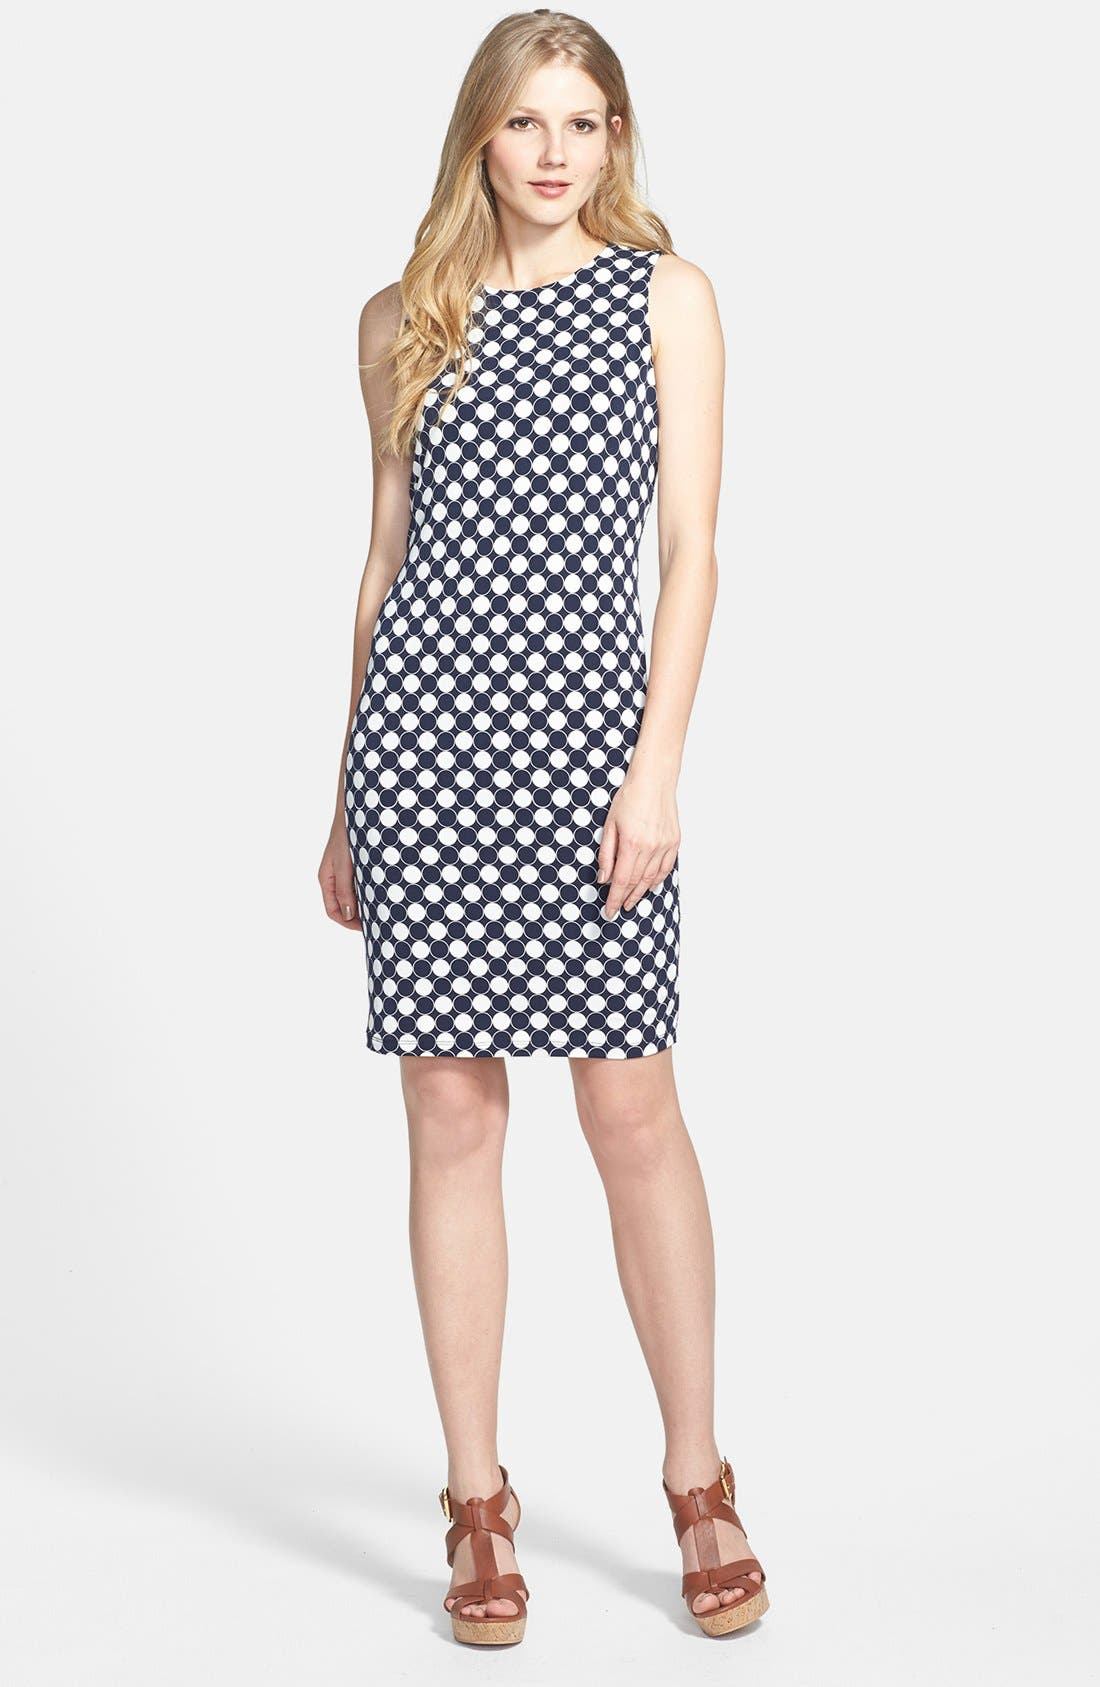 Alternate Image 1 Selected - Vince Camuto 'Retro Dots' Dress